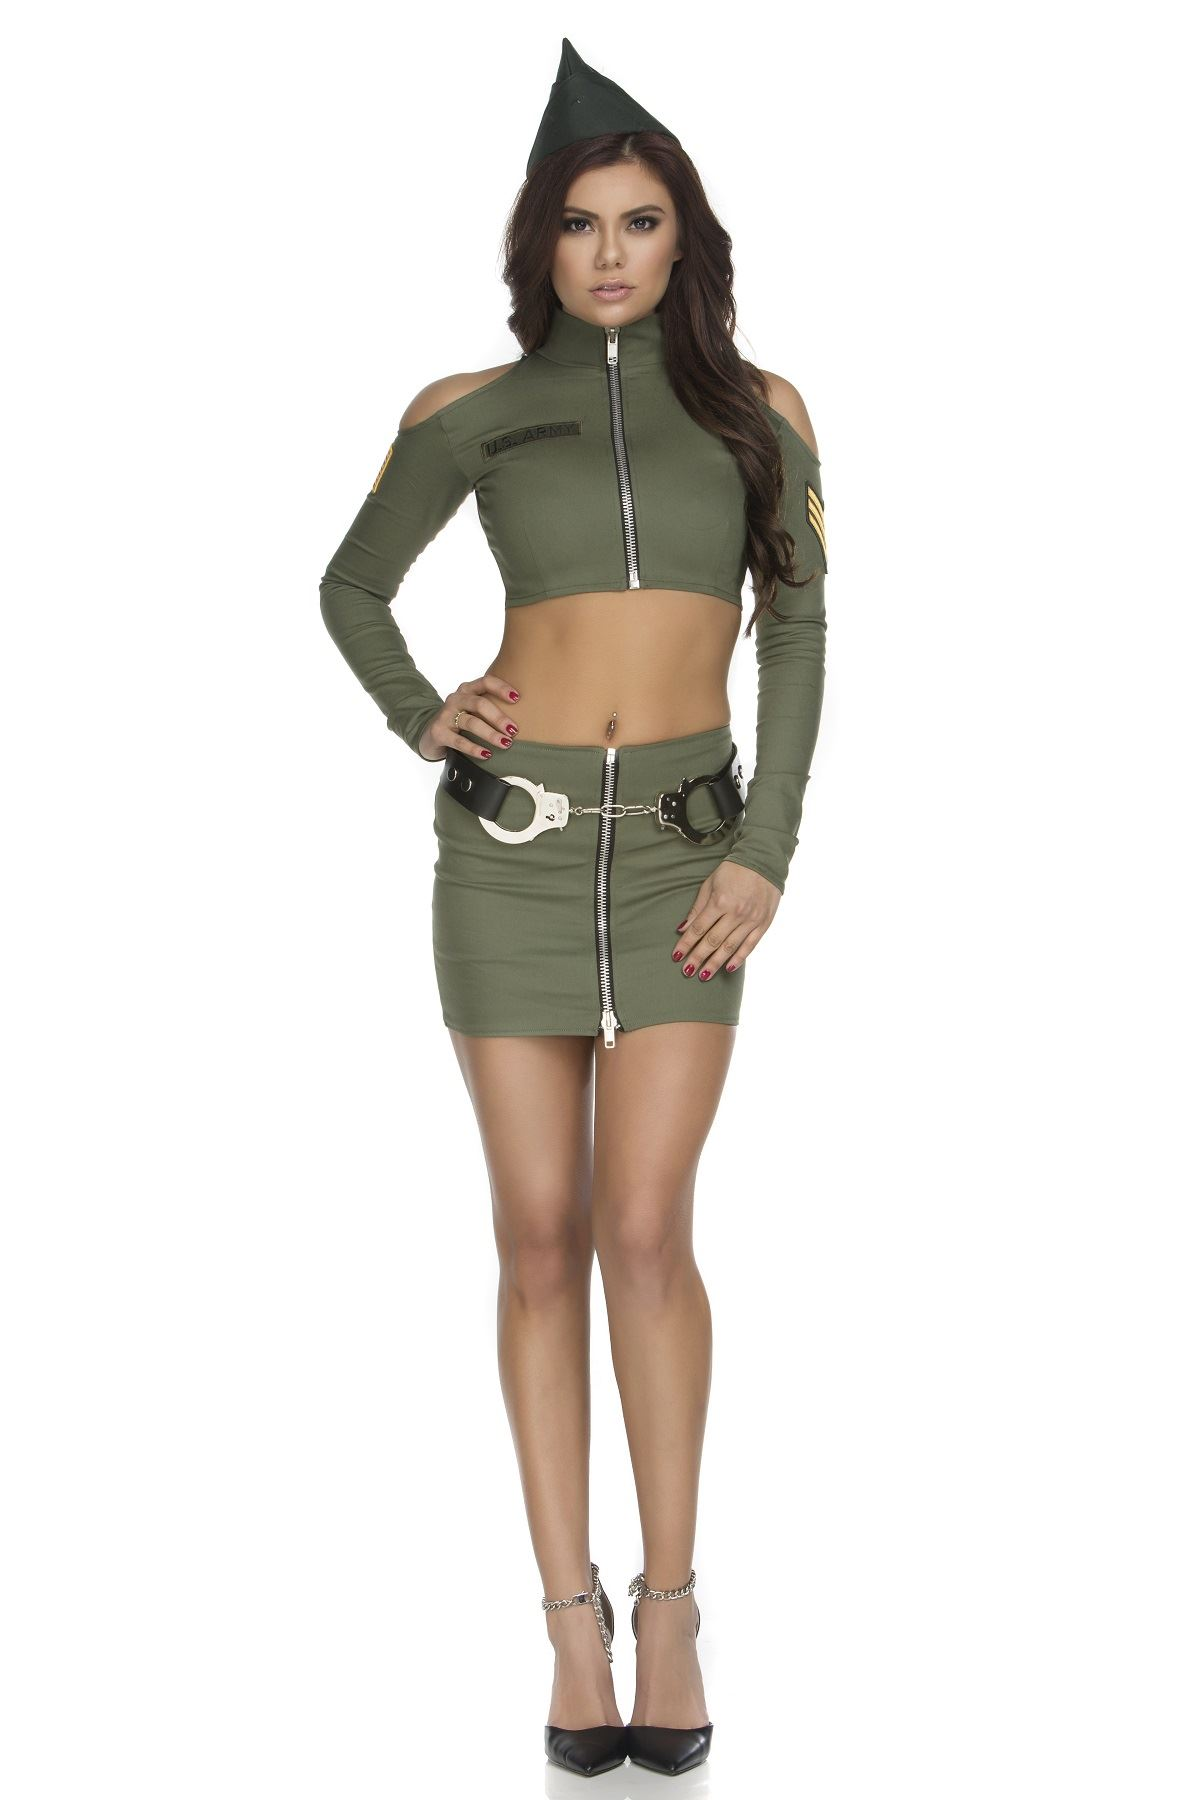 Can sexy army girl costume